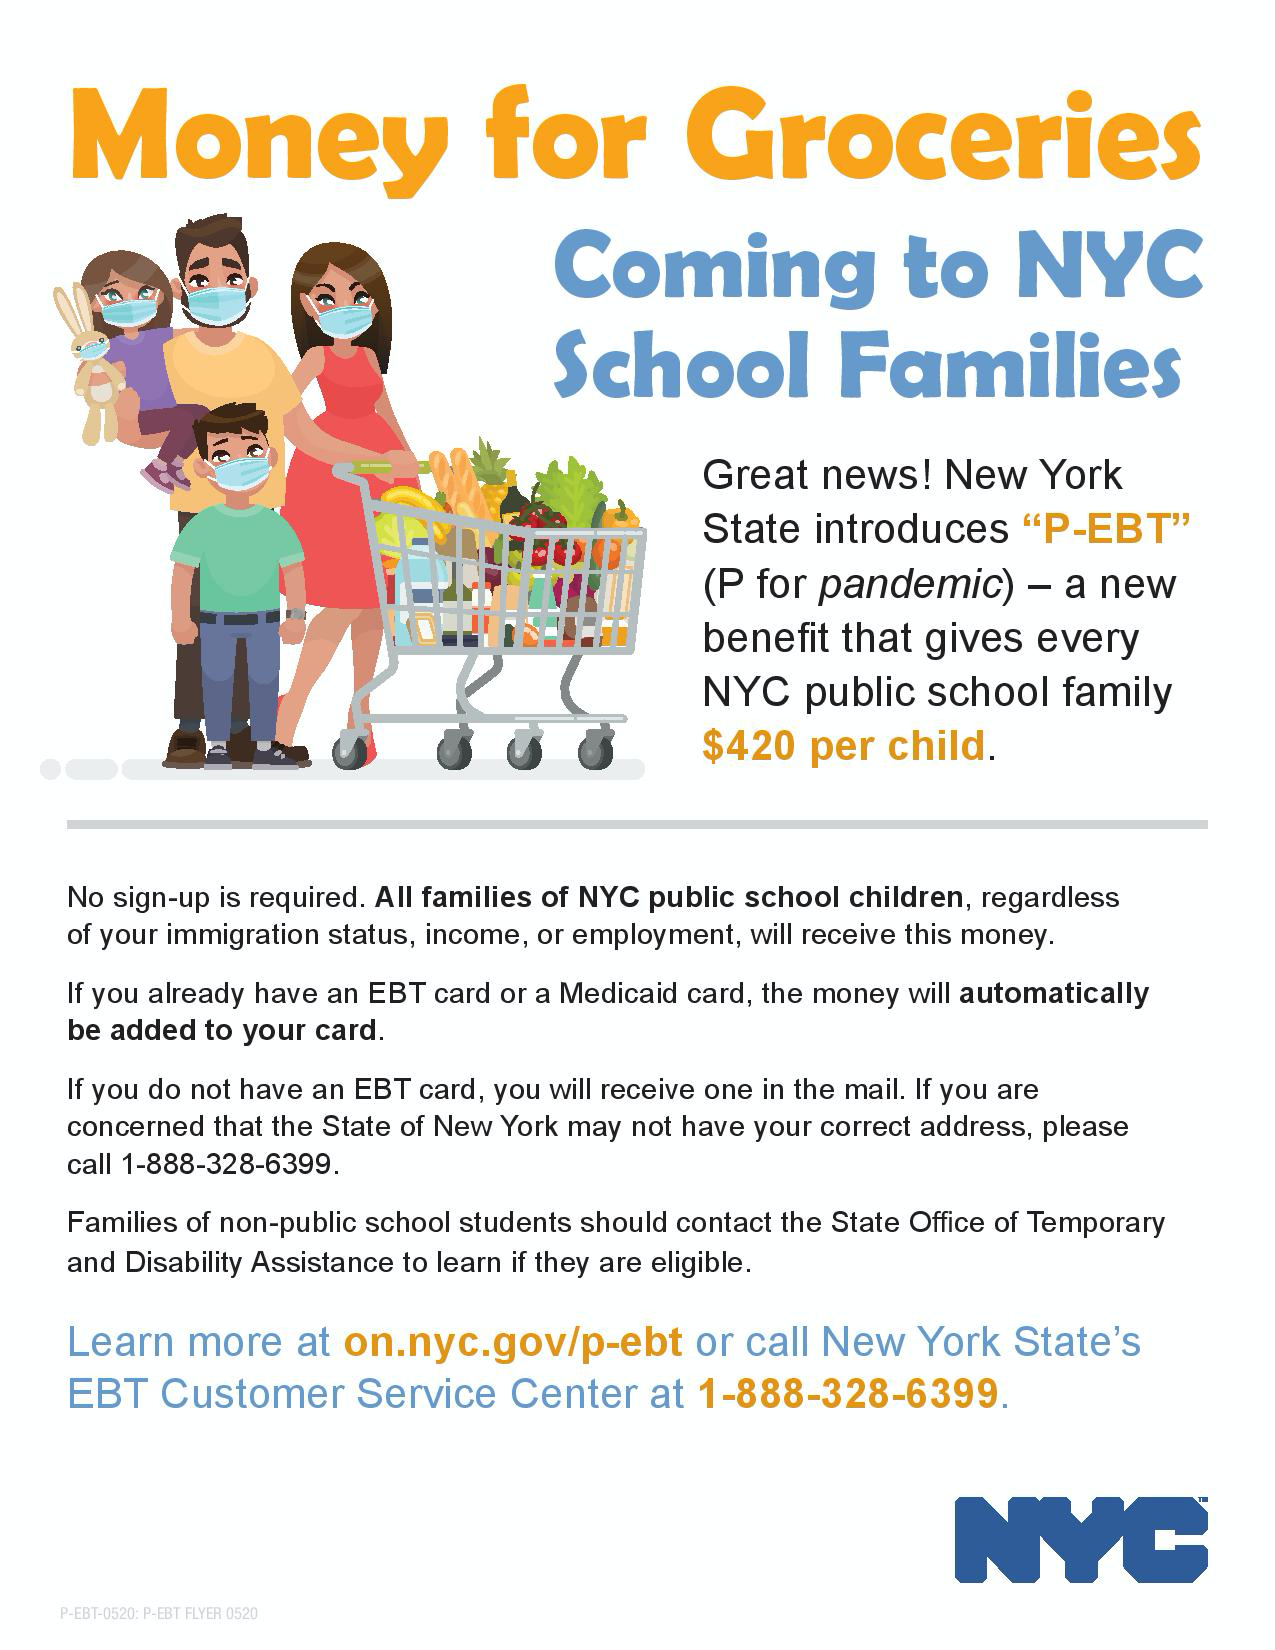 Money for Groceries! Coming to NYC School Families. Great News! NY State introduces P-EBT (P for Pandemic) a new benefit that gives every NYC public school family $420 per child. No sign up is required.